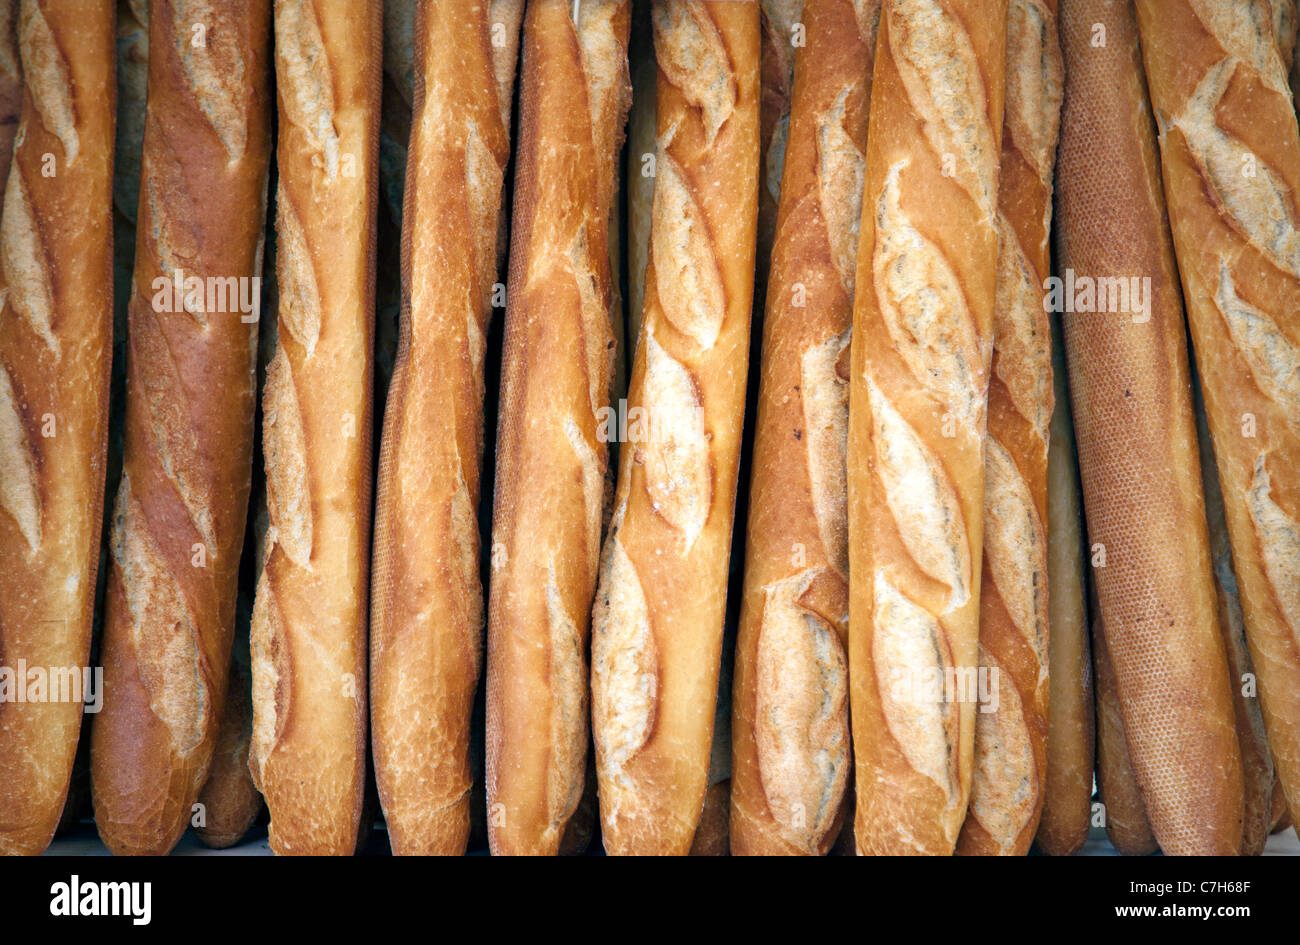 Symbols of French culture,Baguette de tradition française - Stock Image